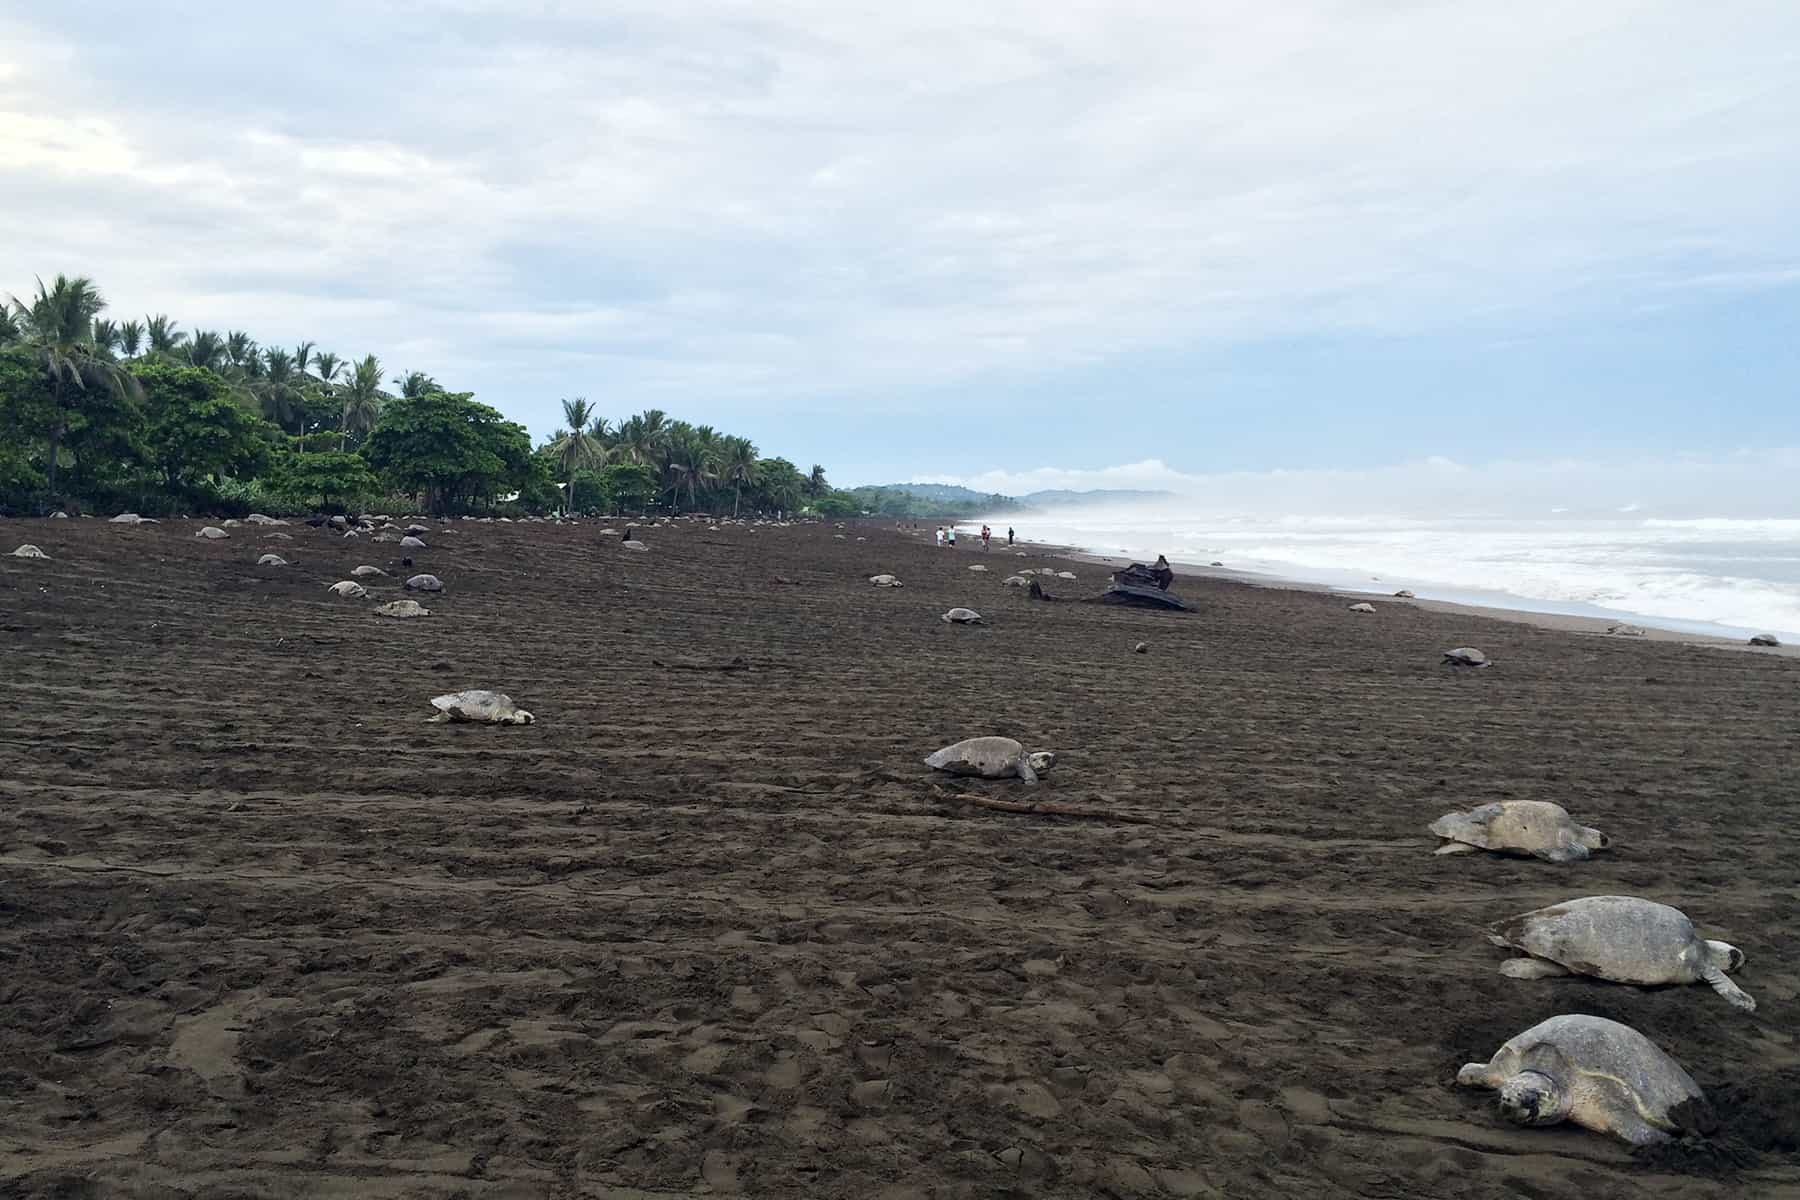 Olive Ridley Sea Turtles Find Mostly Empty E At Costa Rica S Ostional Beach In Guanacaste Province On Wednesday Sept 23 Courtesy Of Sinac